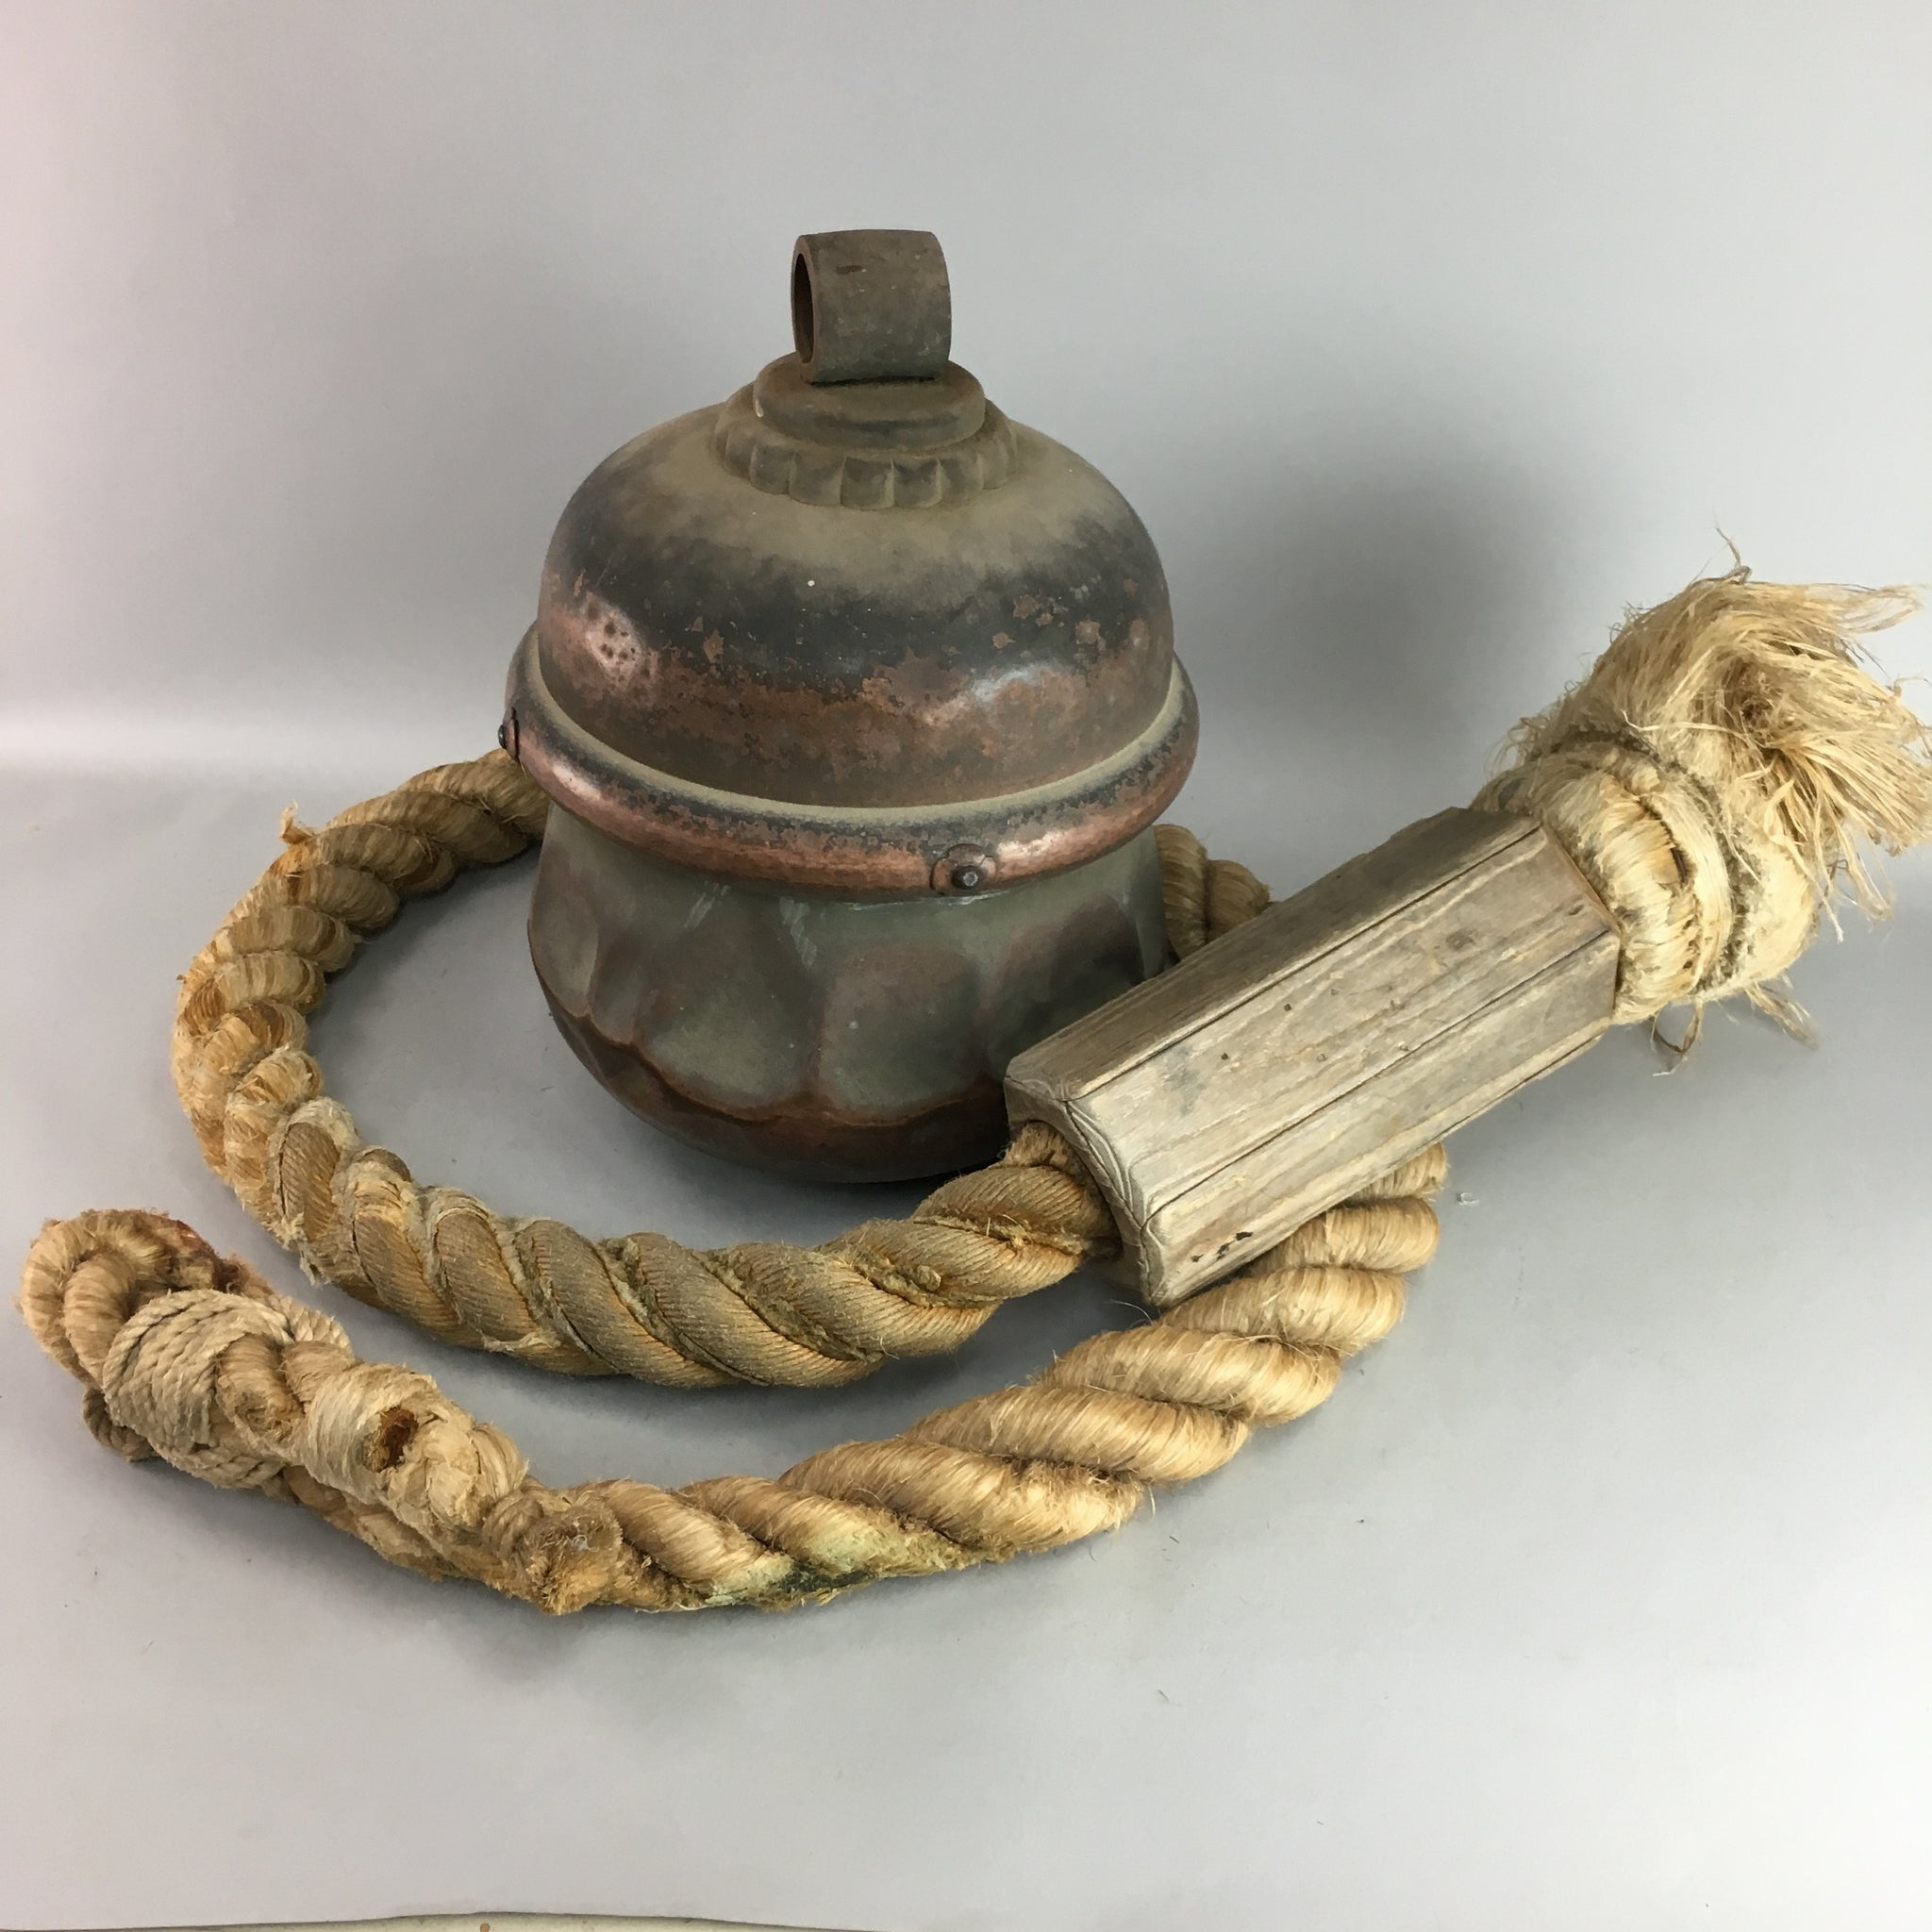 Authentic Japanese Shinto Shrine Bell from Nagoya, Japan